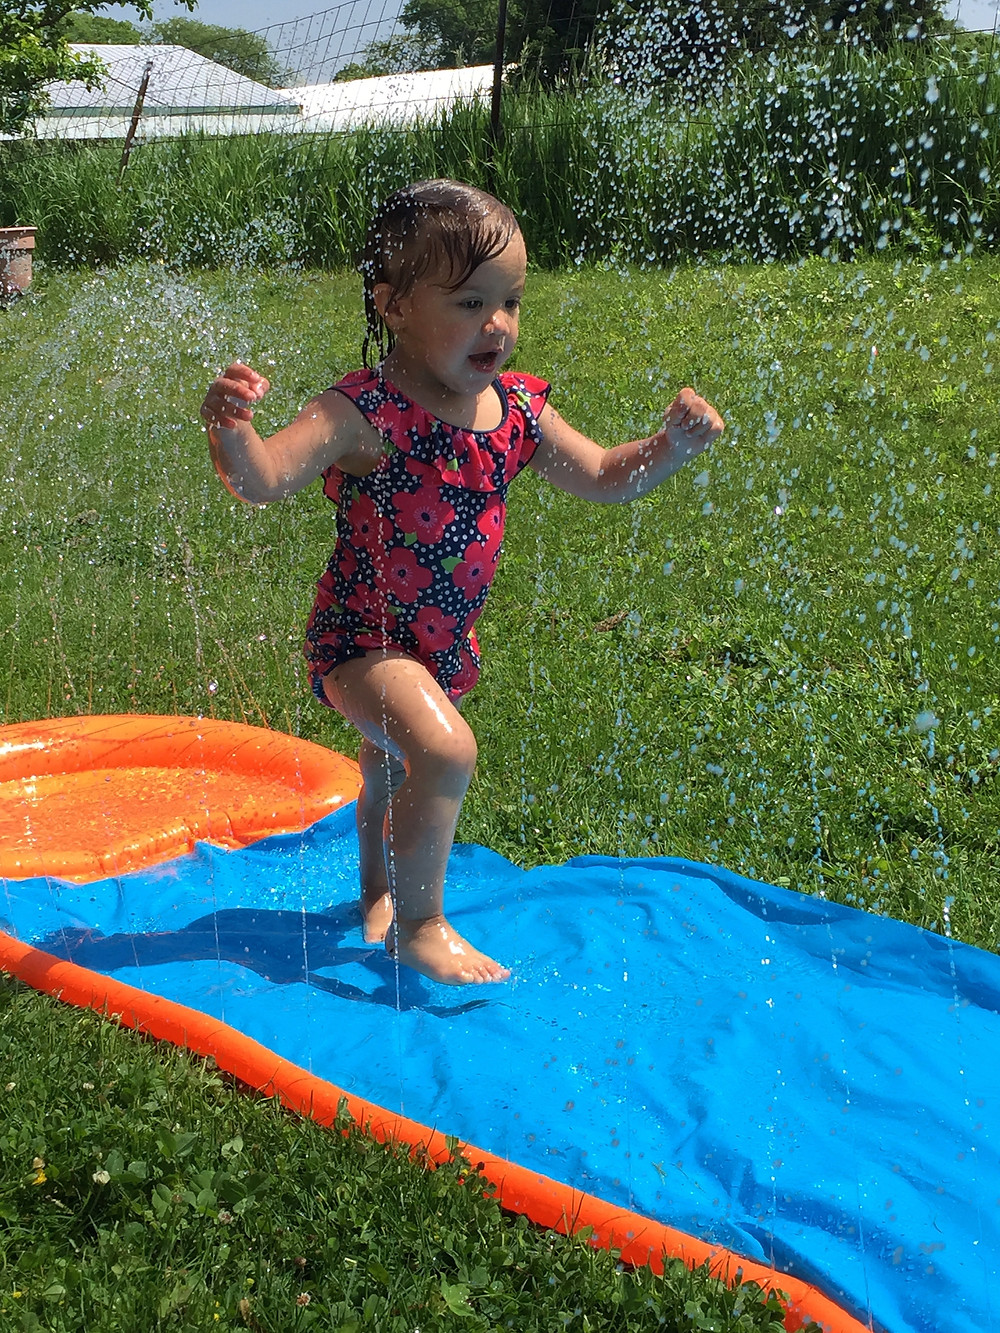 Having a blast with water play at Blue Sky Daycare home daycare